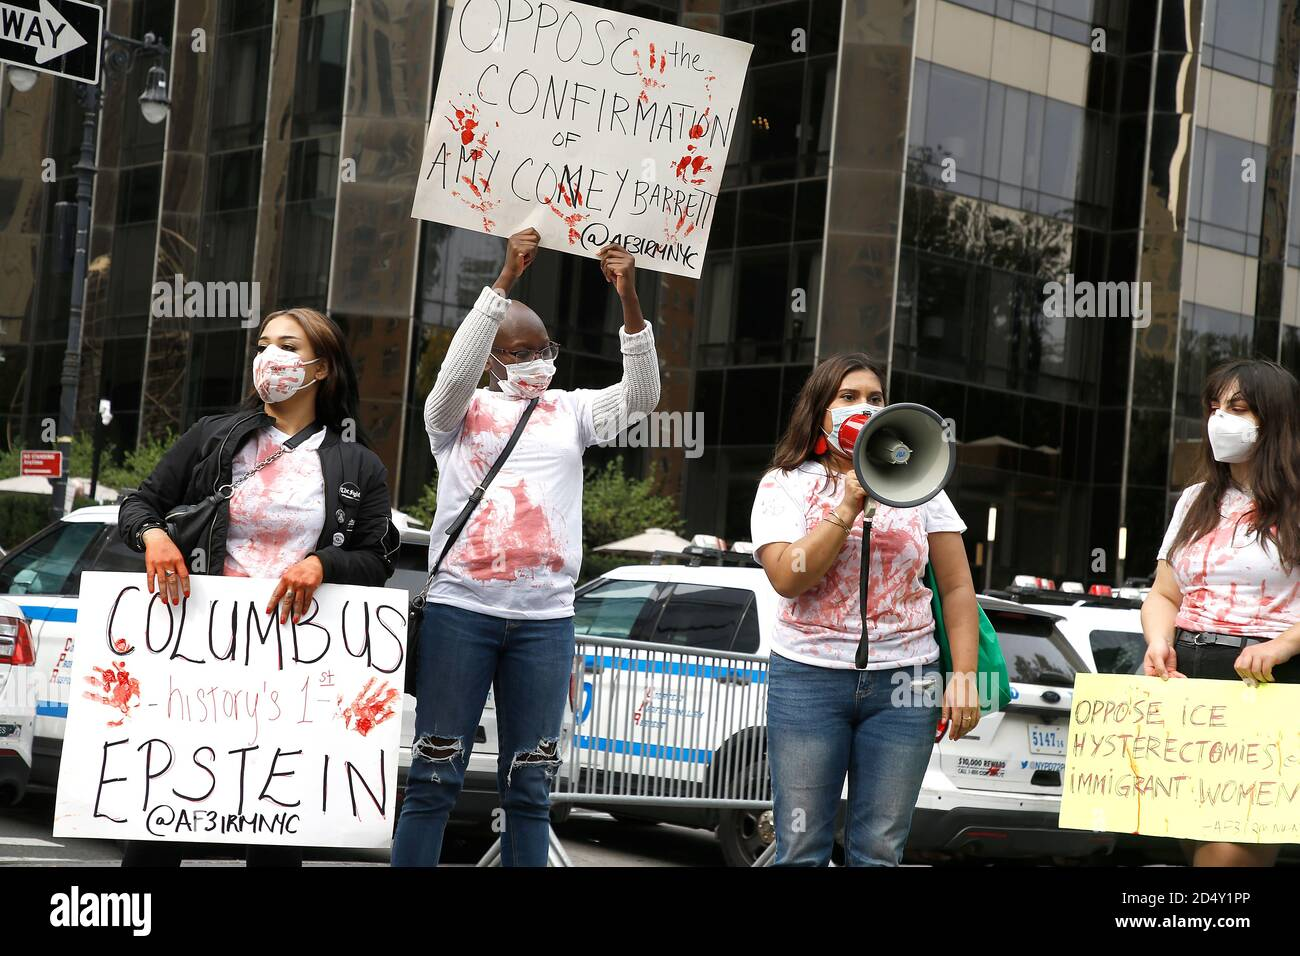 New York, United States. 11th Oct, 2020. Demonstrators speaks on a megaphone in Central Park in protest of the Supreme Court nominee, Amy Coney Barrett, violence against women and forced hysterectomies of immigrant women. Credit: SOPA Images Limited/Alamy Live News Stock Photo